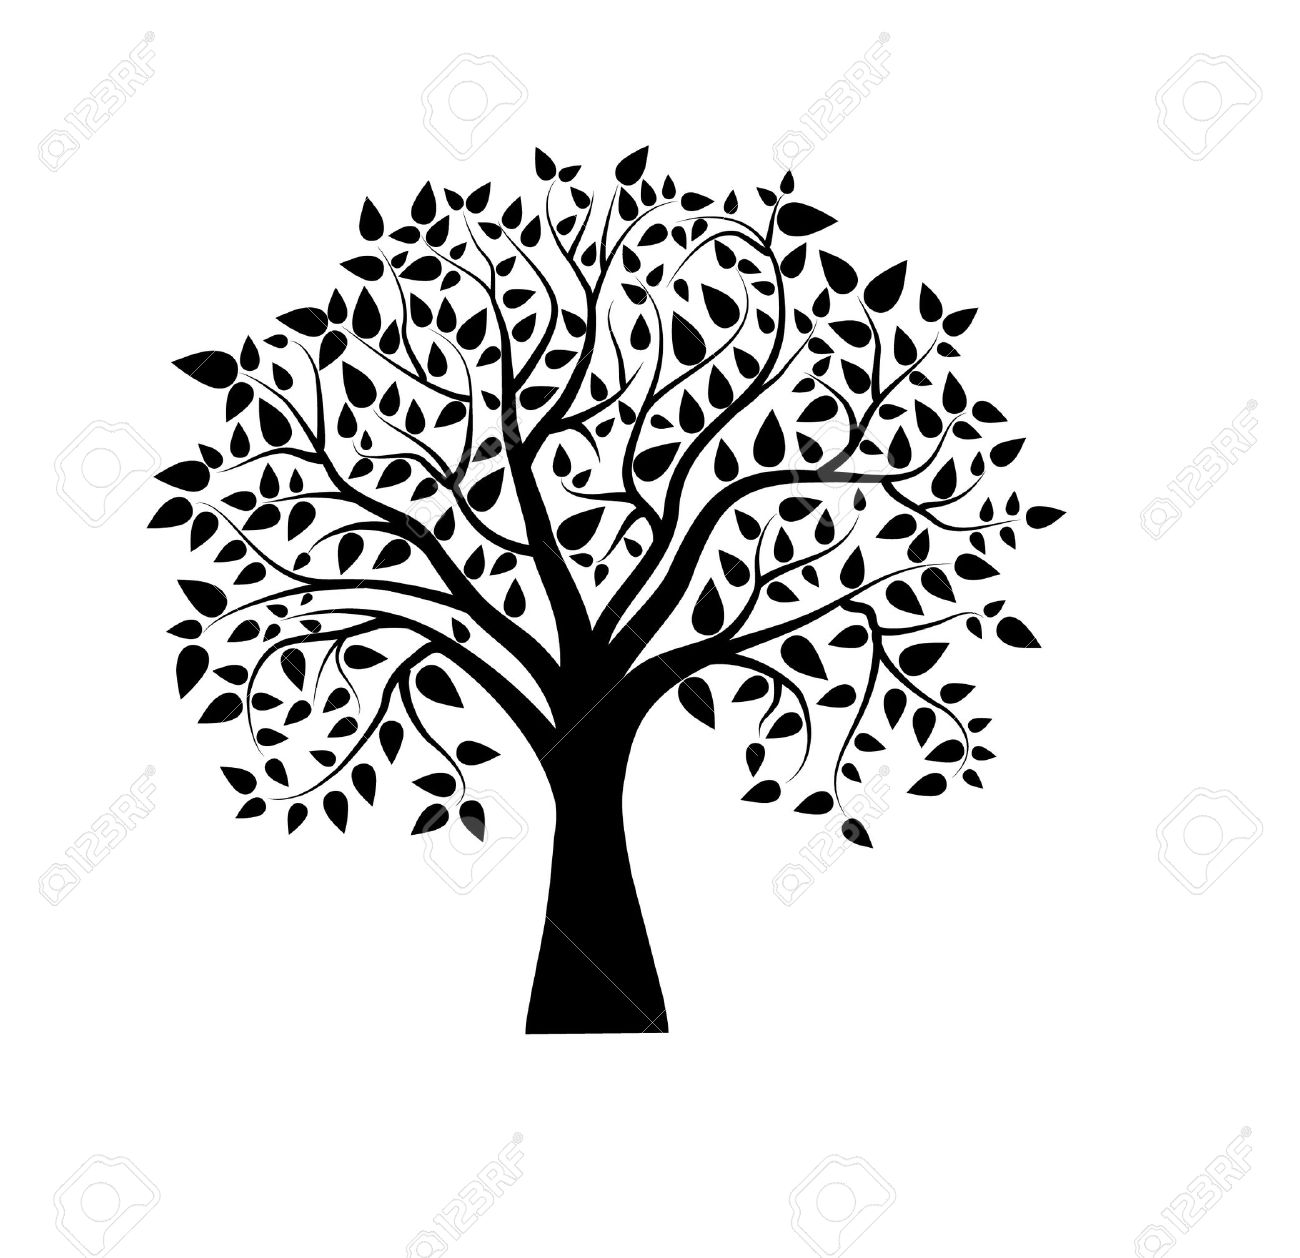 Vector vector tree in black and white